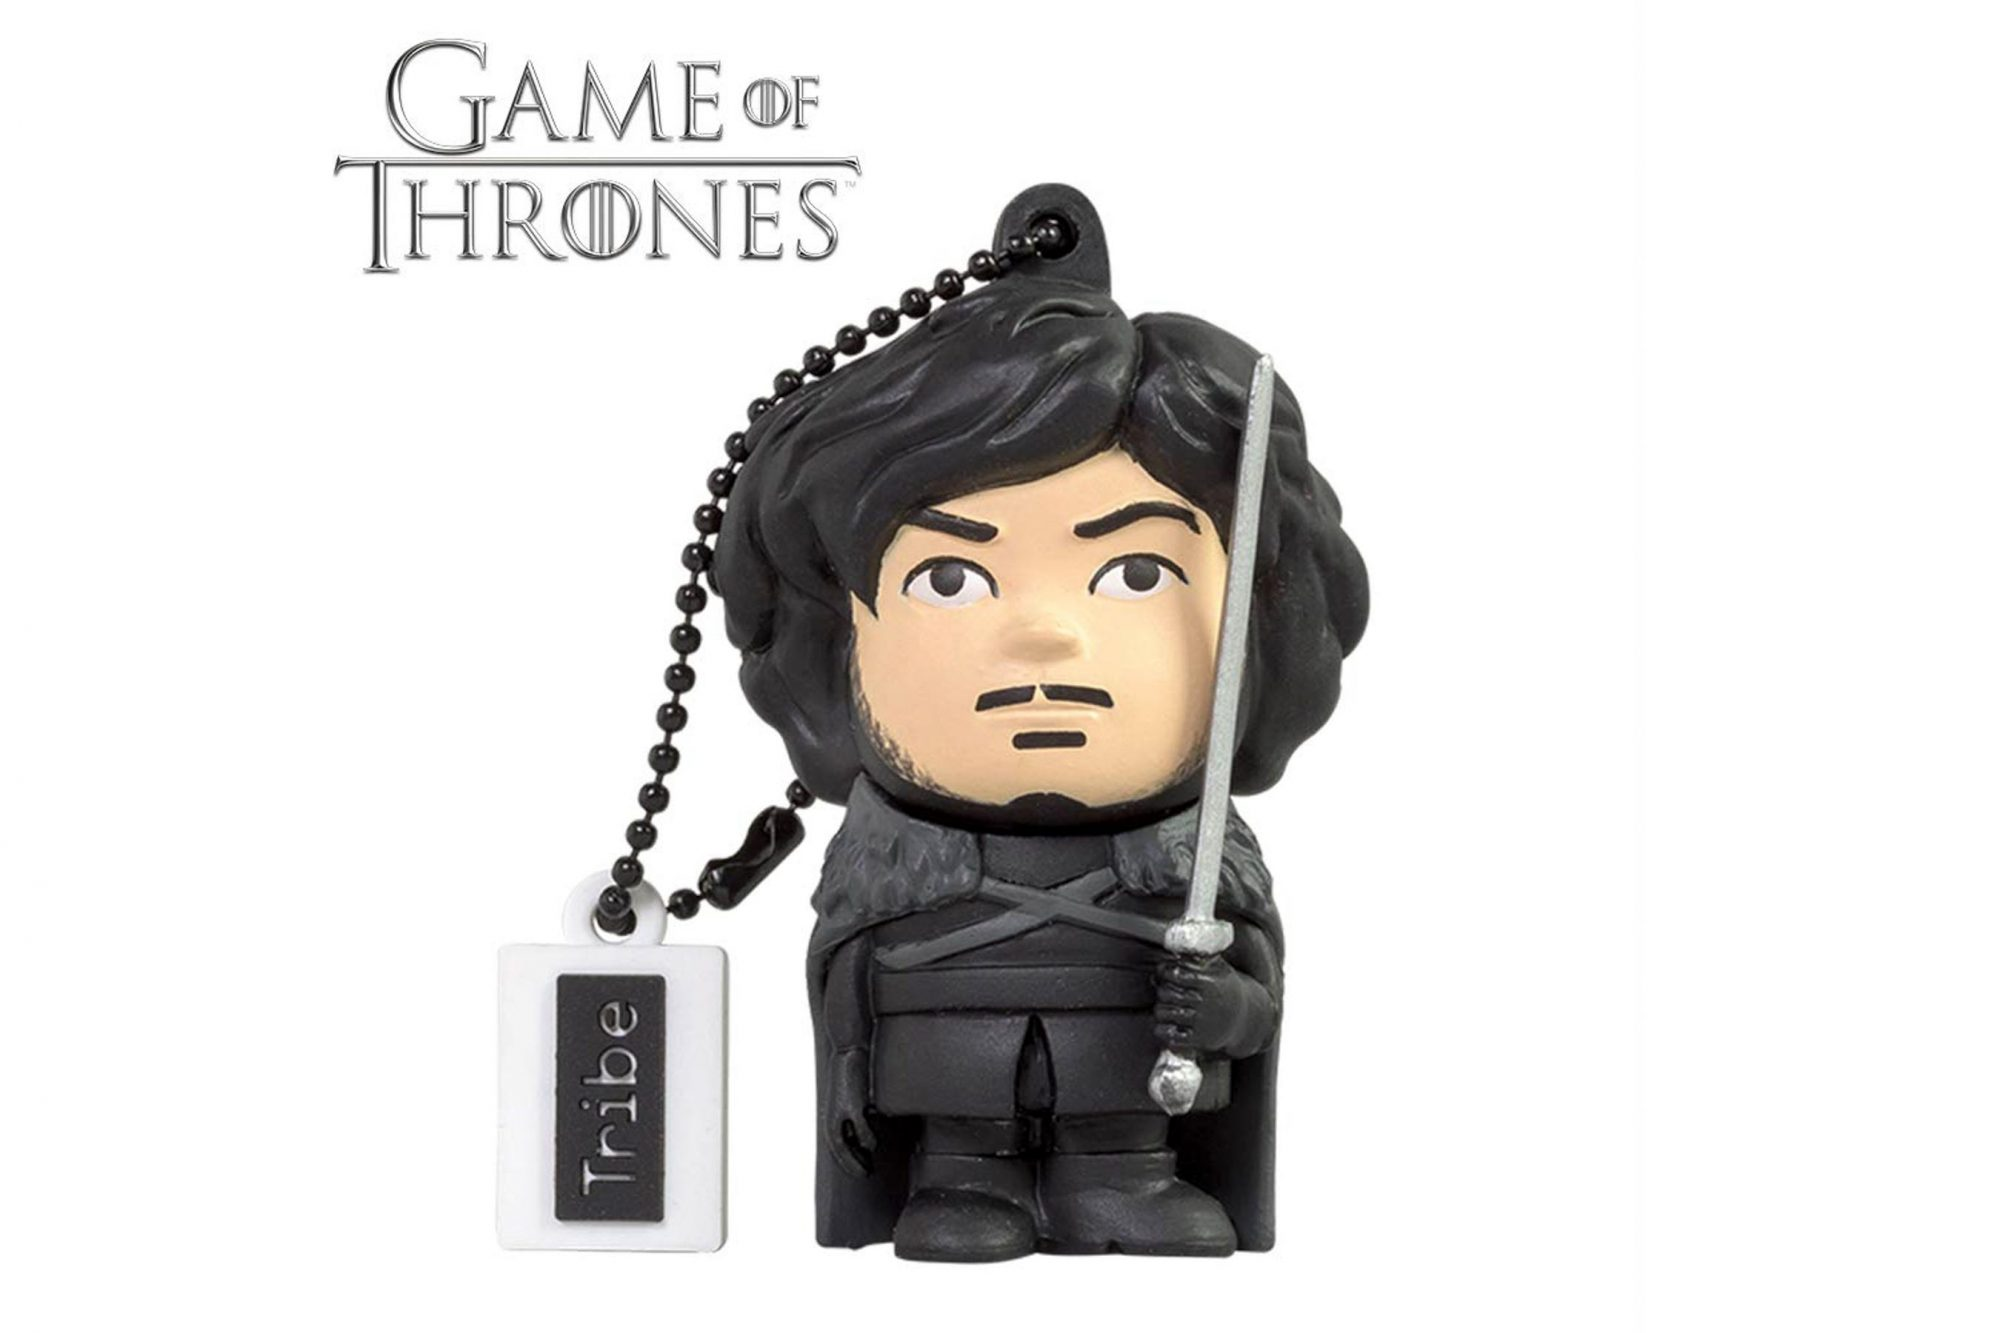 Tribe Games of Thrones Pendrive Figure 16 GB USB Flash Drive